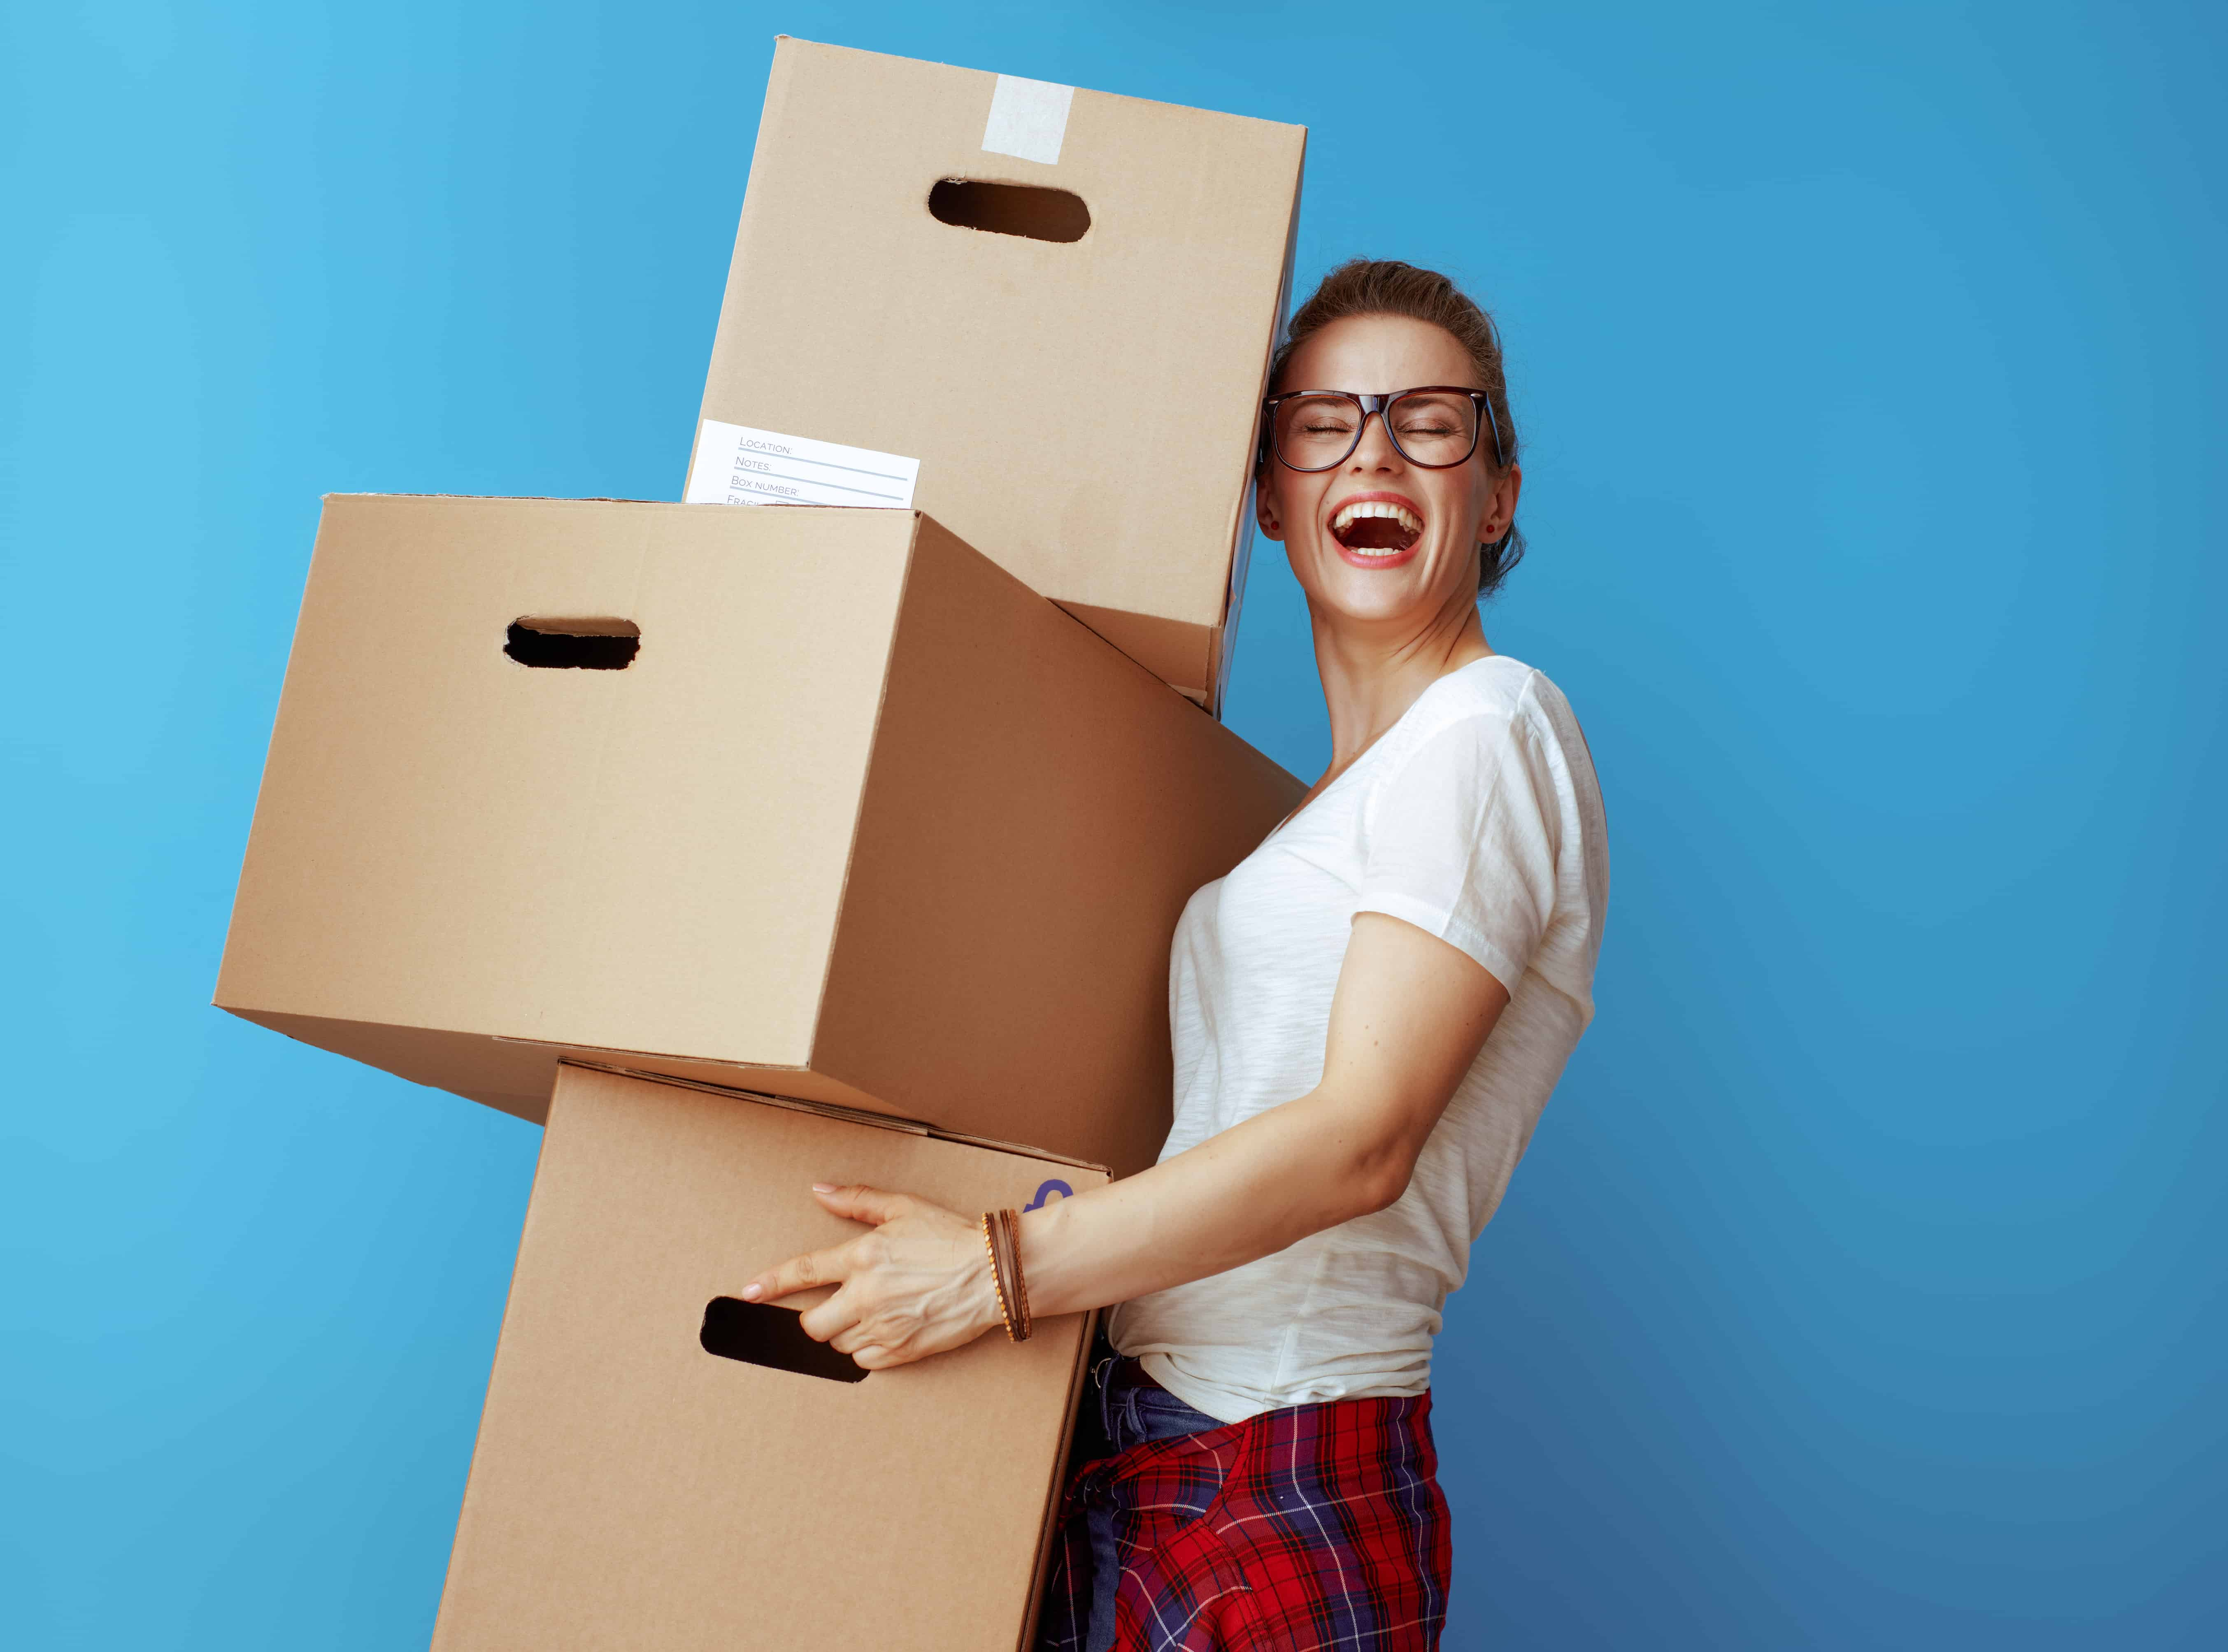 Woman holding boxes and smiling after decluttering and preparing for a move.